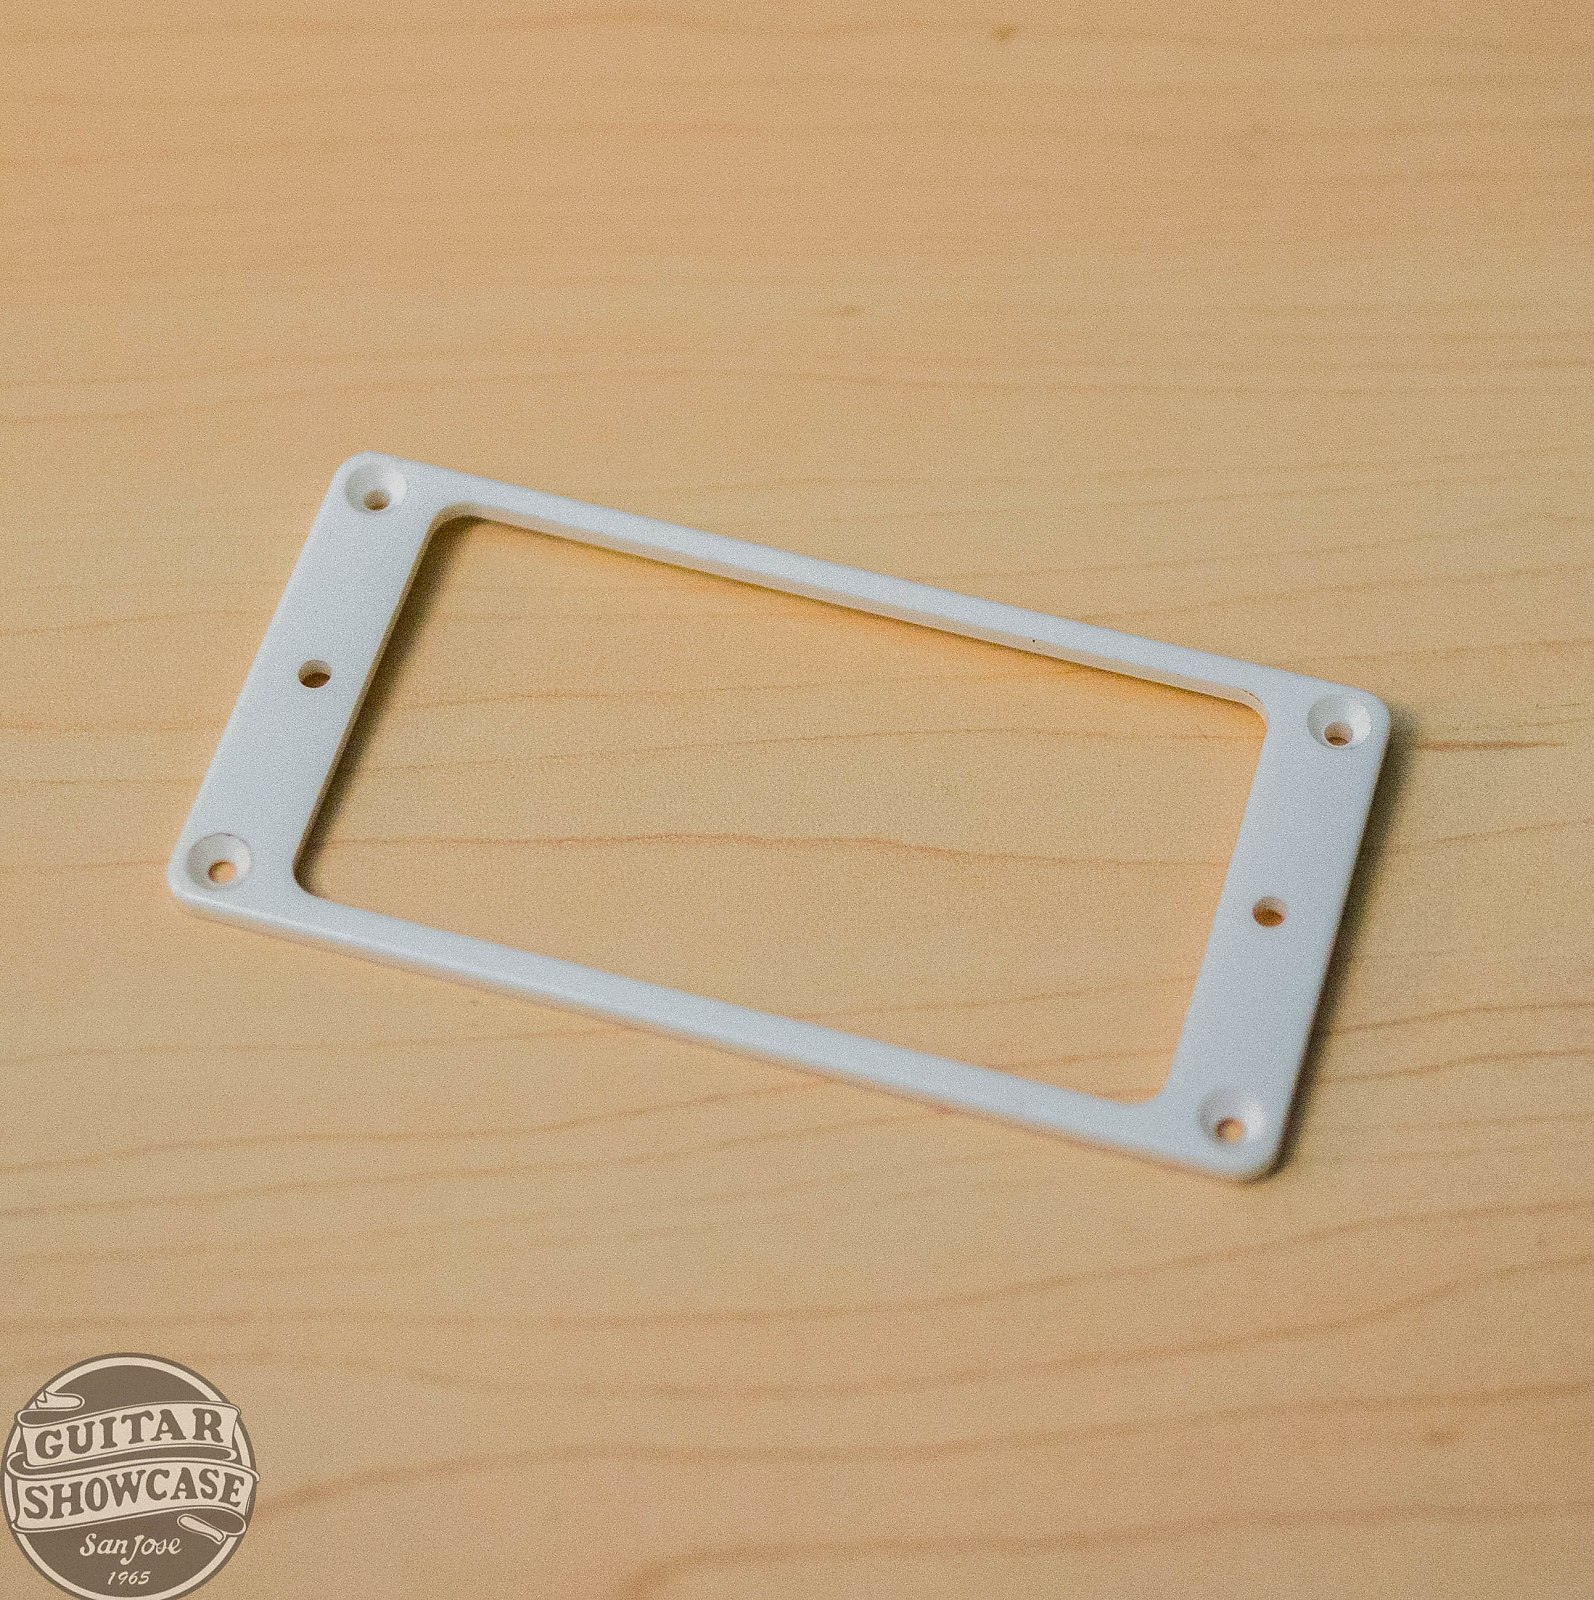 NOS Gibson M-69 MR492 5 Early 1970s White Neck Pickup Ring